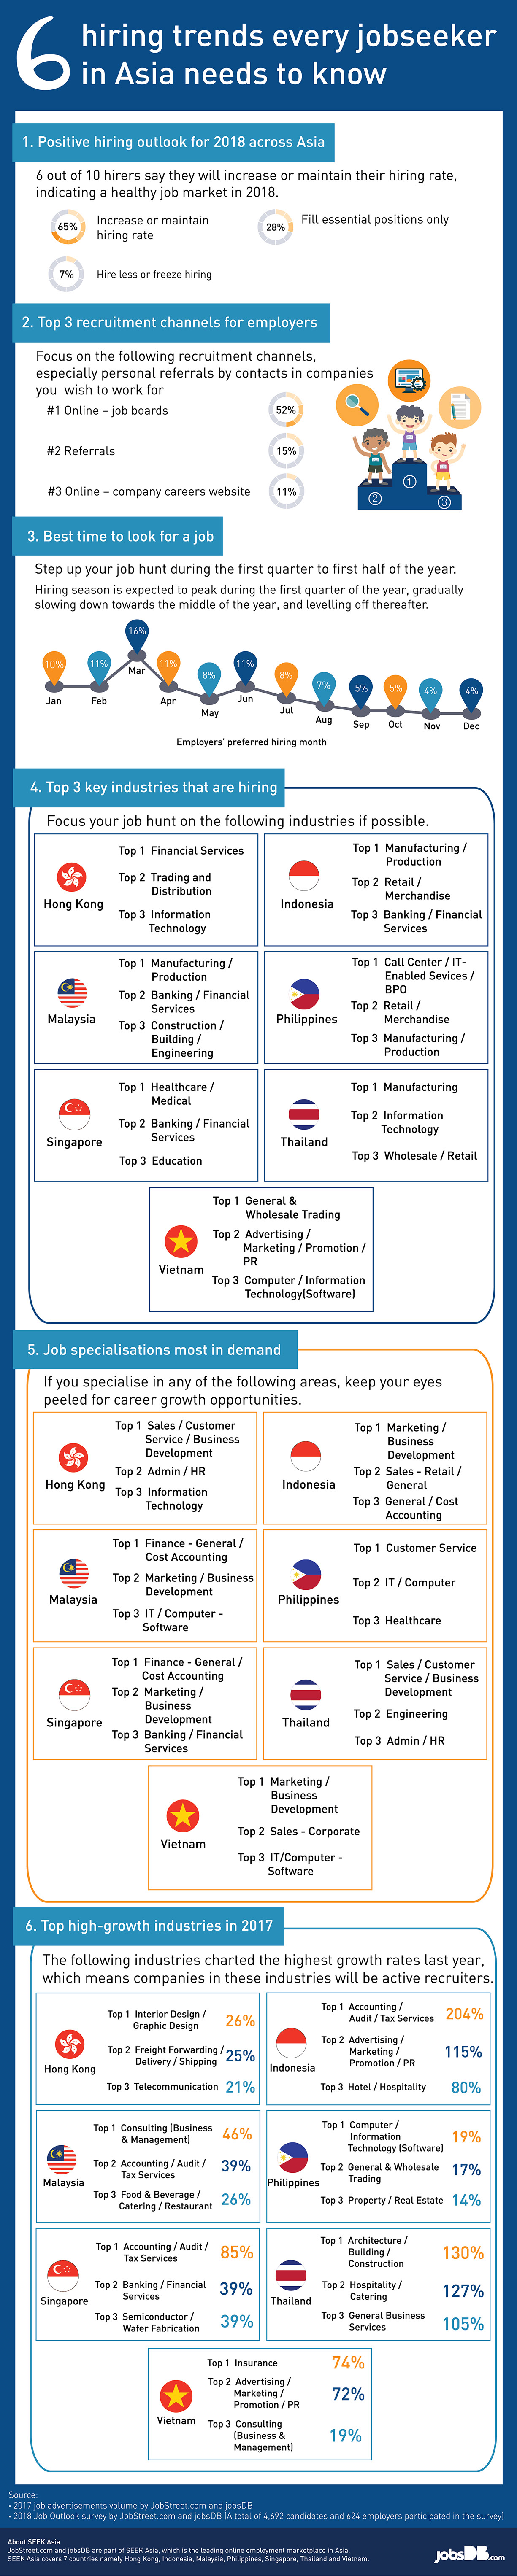 6 hiring trends every jobseeker in Asia needs to know (infographic)